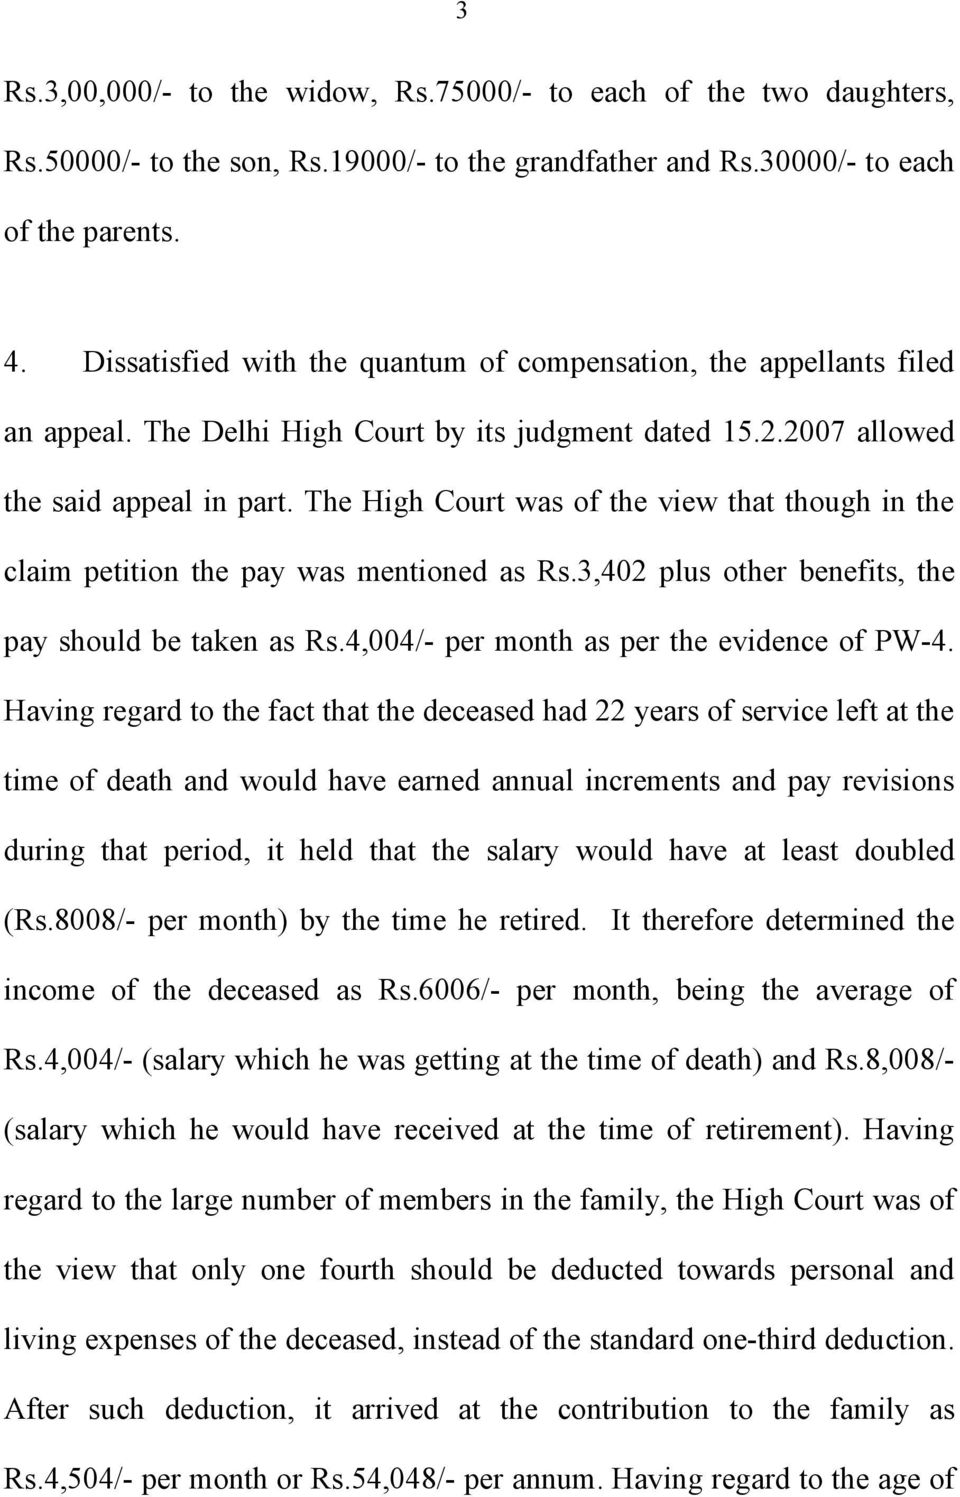 The High Court was of the view that though in the claim petition the pay was mentioned as Rs.3,402 plus other benefits, the pay should be taken as Rs.4,004/- per month as per the evidence of PW-4.